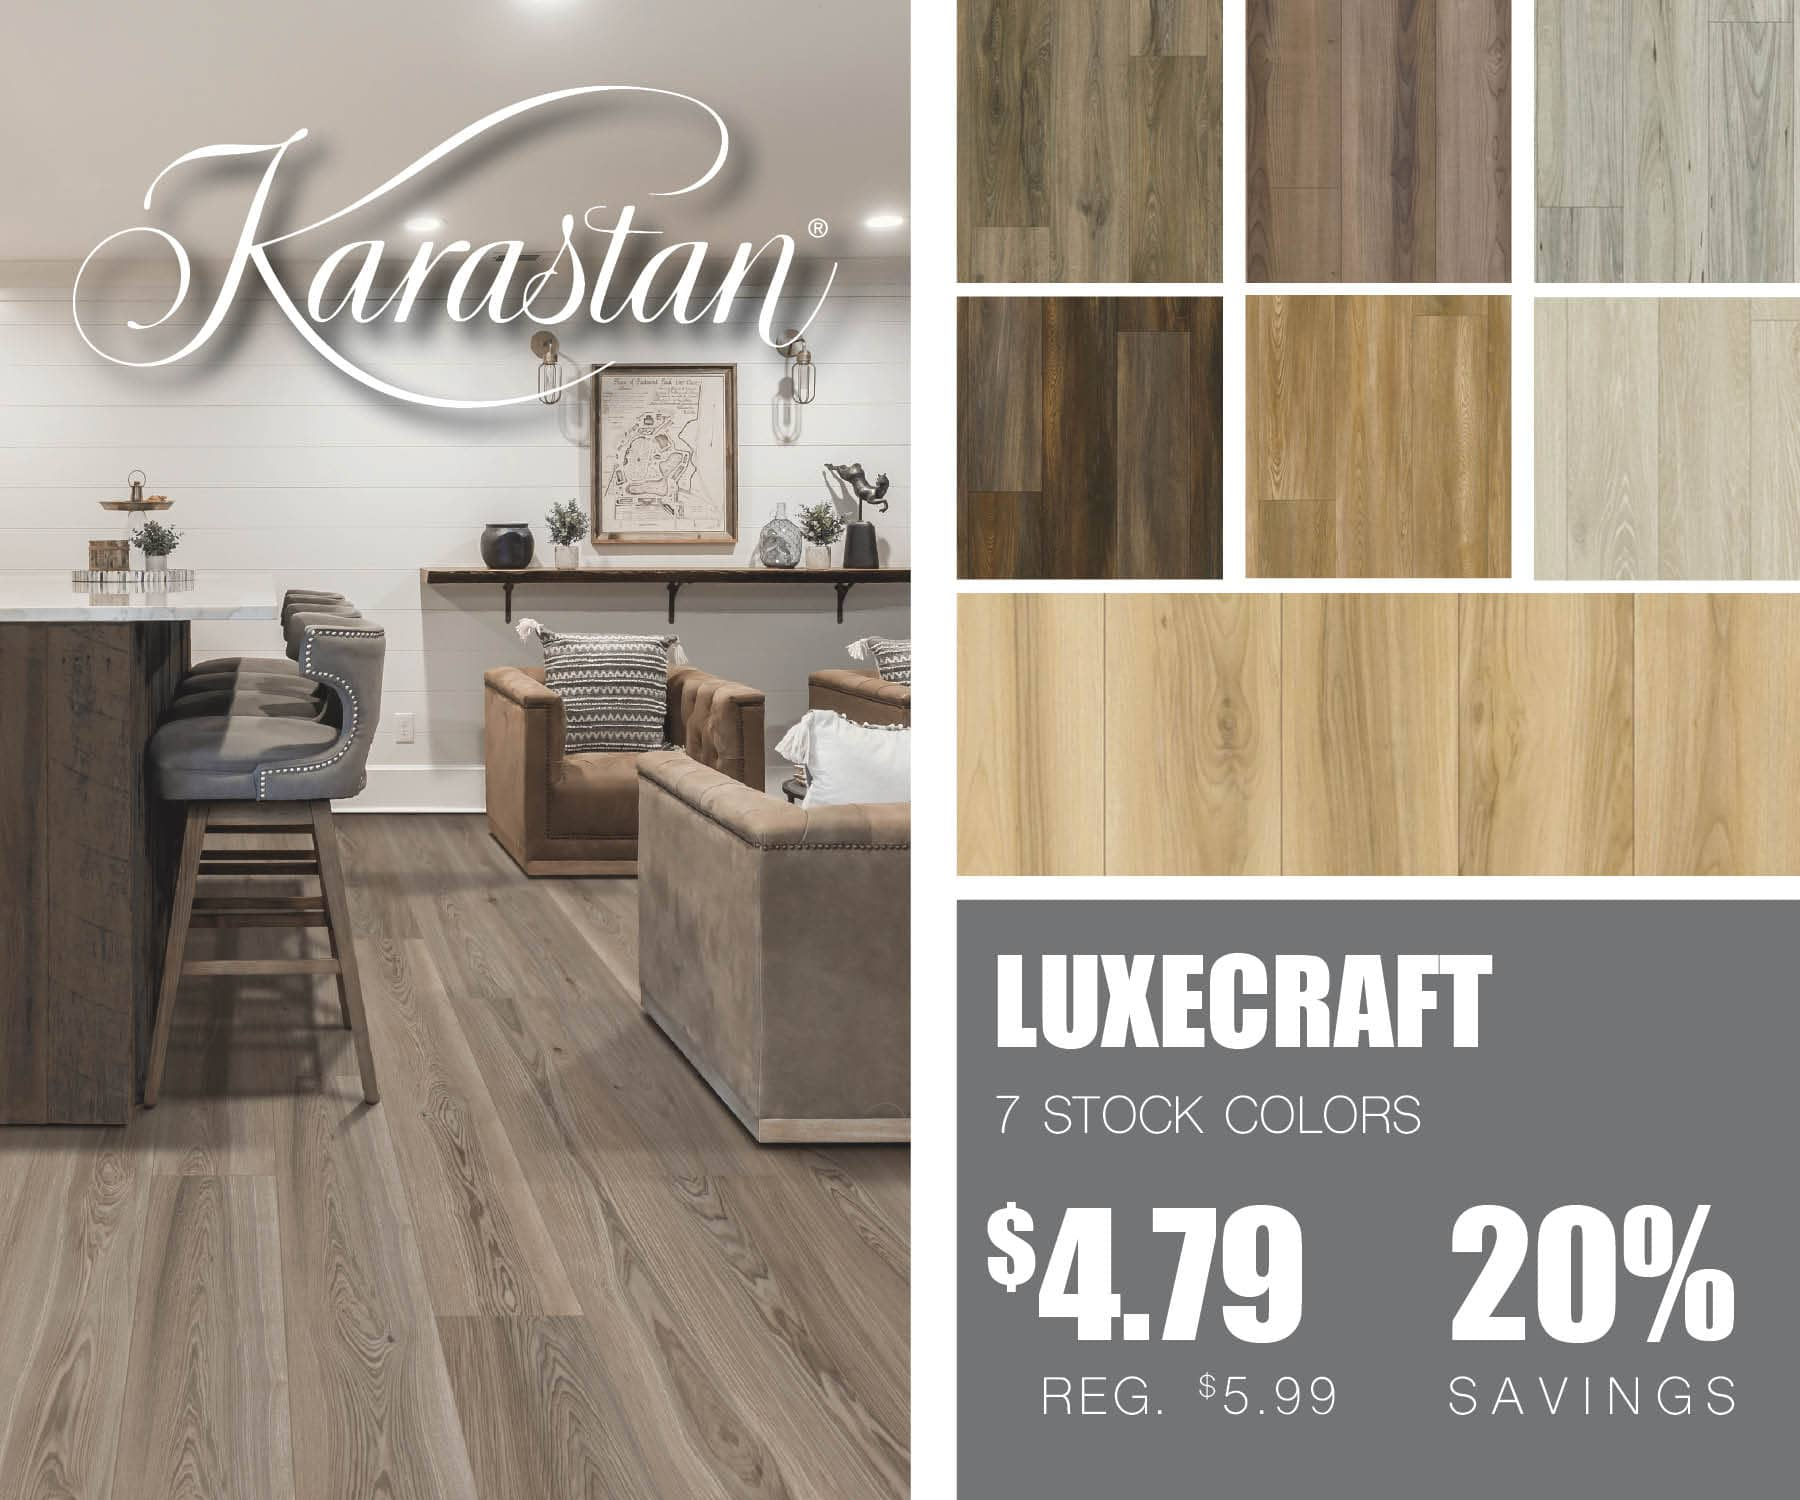 Karastan LuxeCraft Luxury Vinyl | McSwain Carpet & Floors